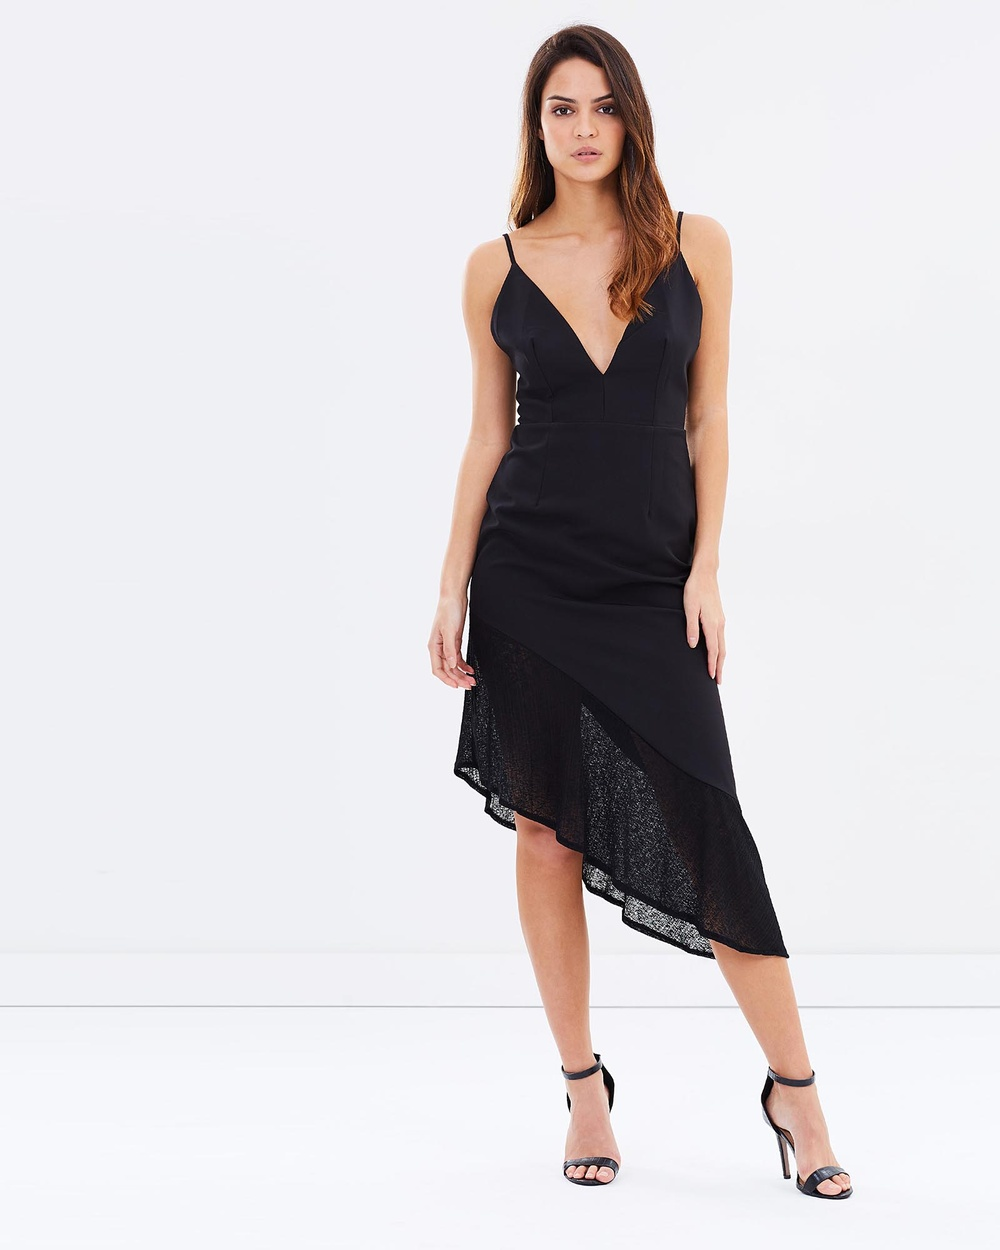 DELPHINE Treading Water Midi Dress Dresses Black Treading Water Midi Dress